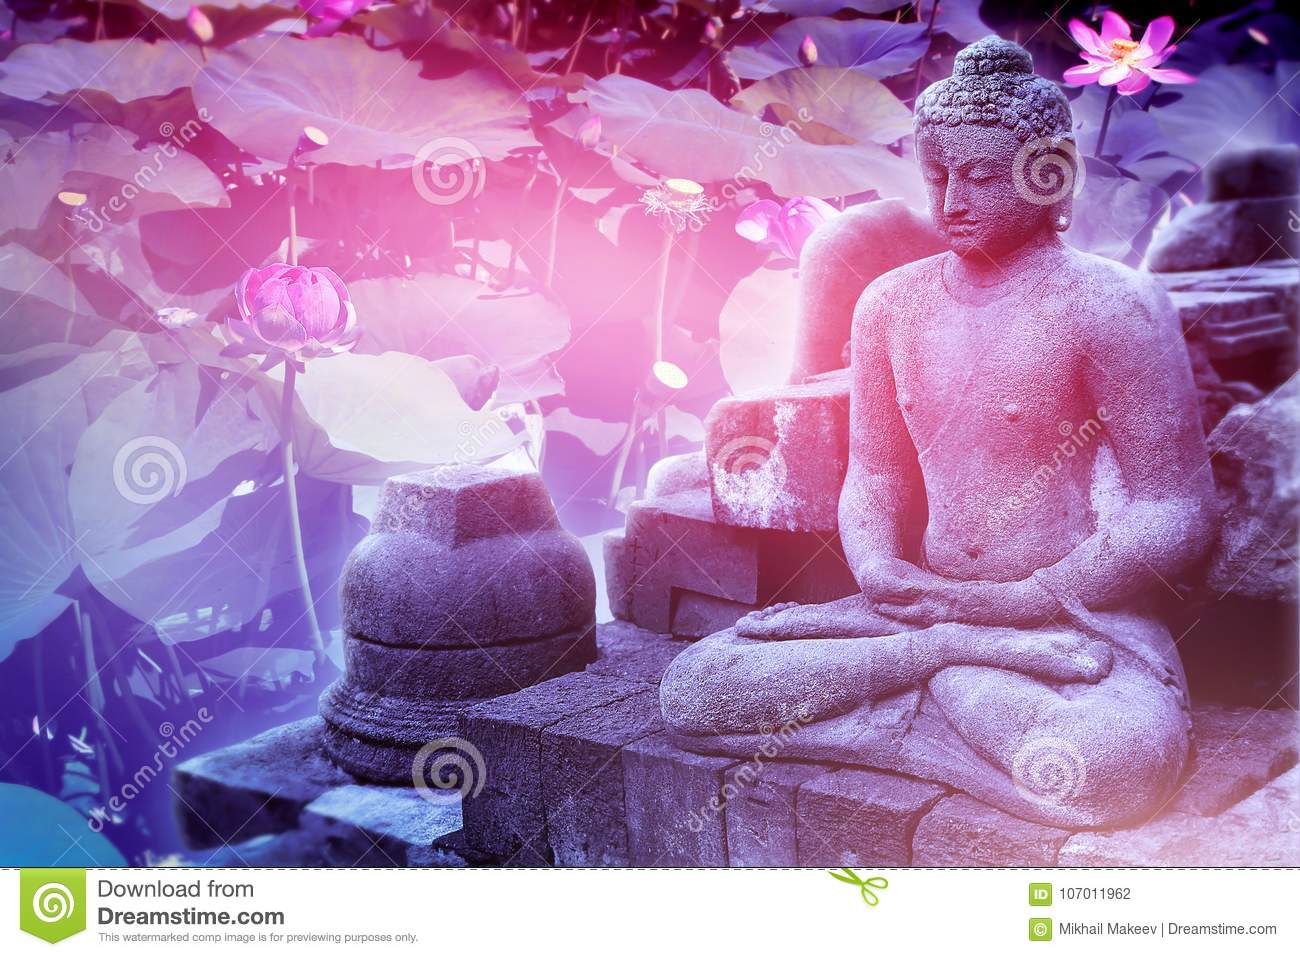 Sculpture of buddha on a floral pink background sacred lotus sculpture of buddha on a floral pink background sacred lotus flowers artistic image izmirmasajfo